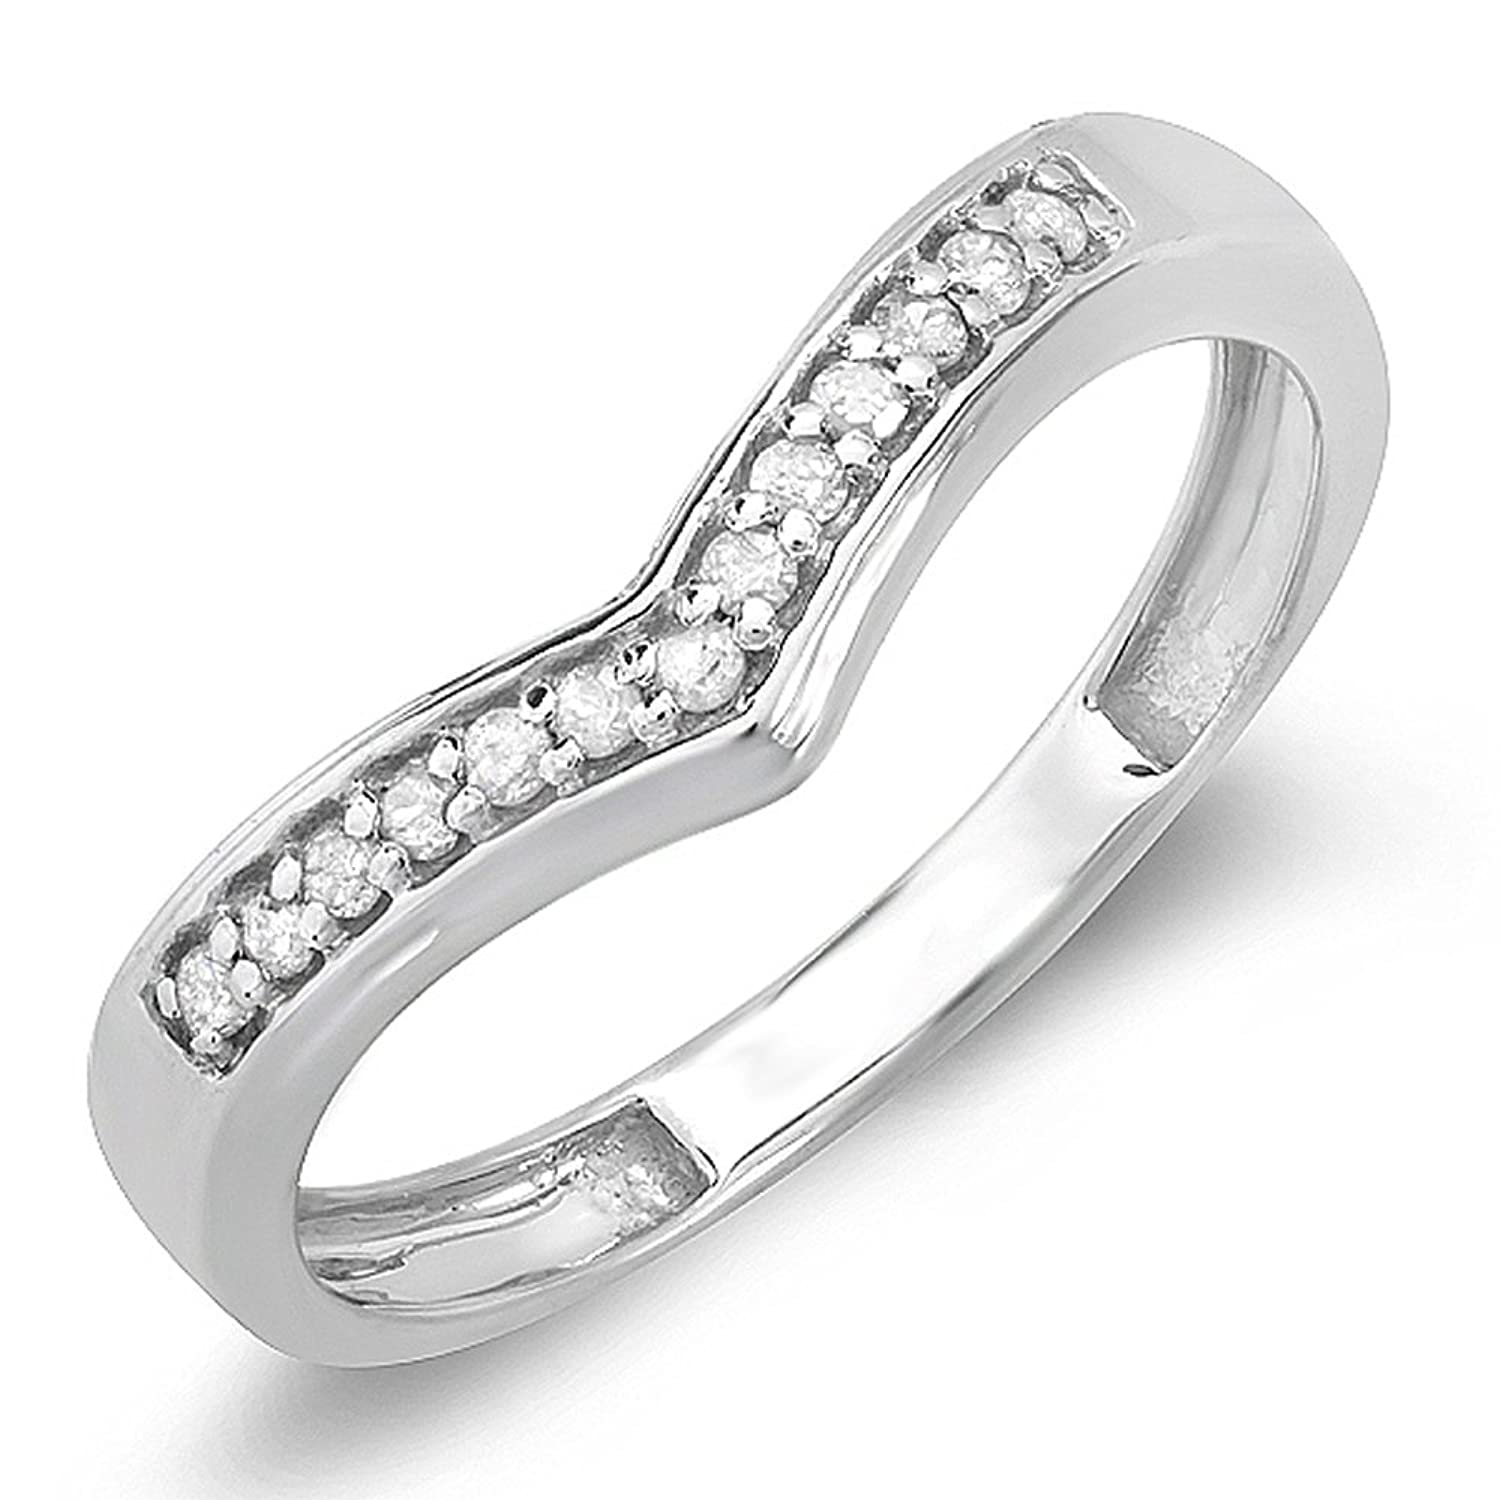 0.15 Carat (ctw) 10K White Gold Round Real Diamond Wedding Stackable Band Anniversary Guard Chevron Ring